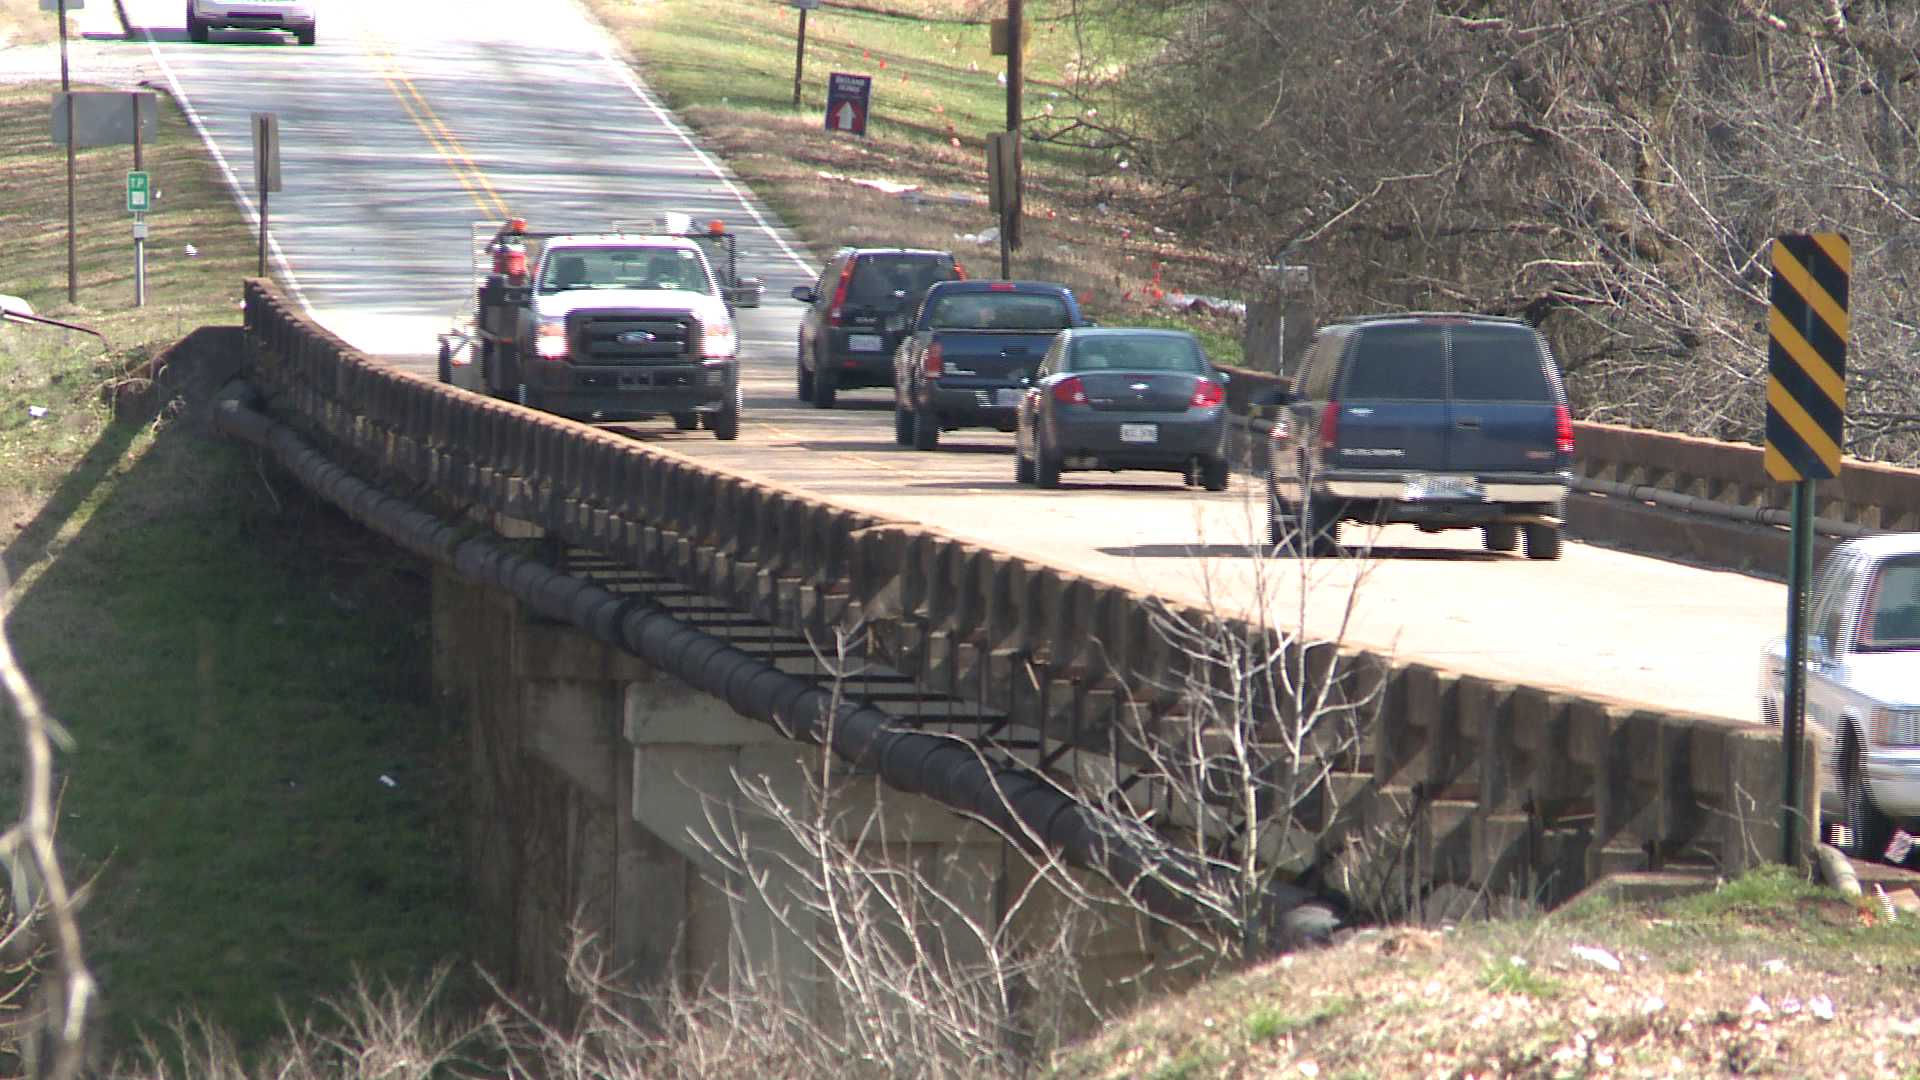 Drivers move across the Flint River bridge on Winchester Road on Monday. (Photo: Gregg Stone, WHNT News 19)